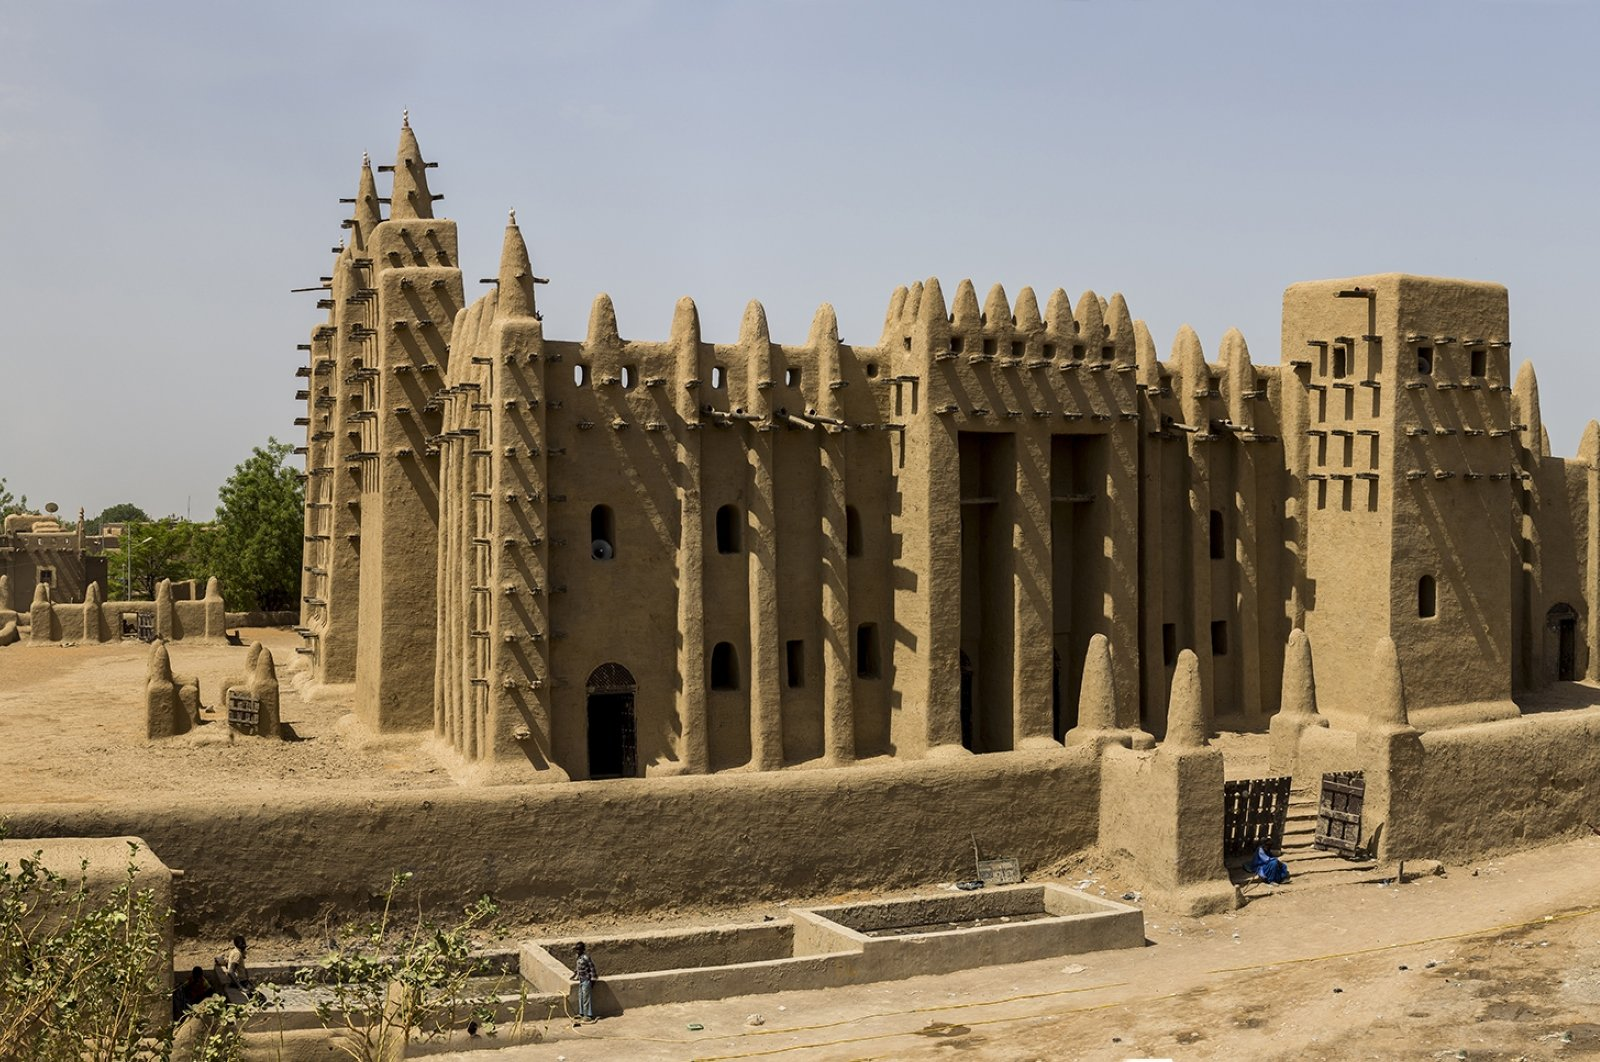 A photo of the Great Mosque of Djenne in the city of Djenne, Mali by Orhan Durgut. (AA PHOTO)